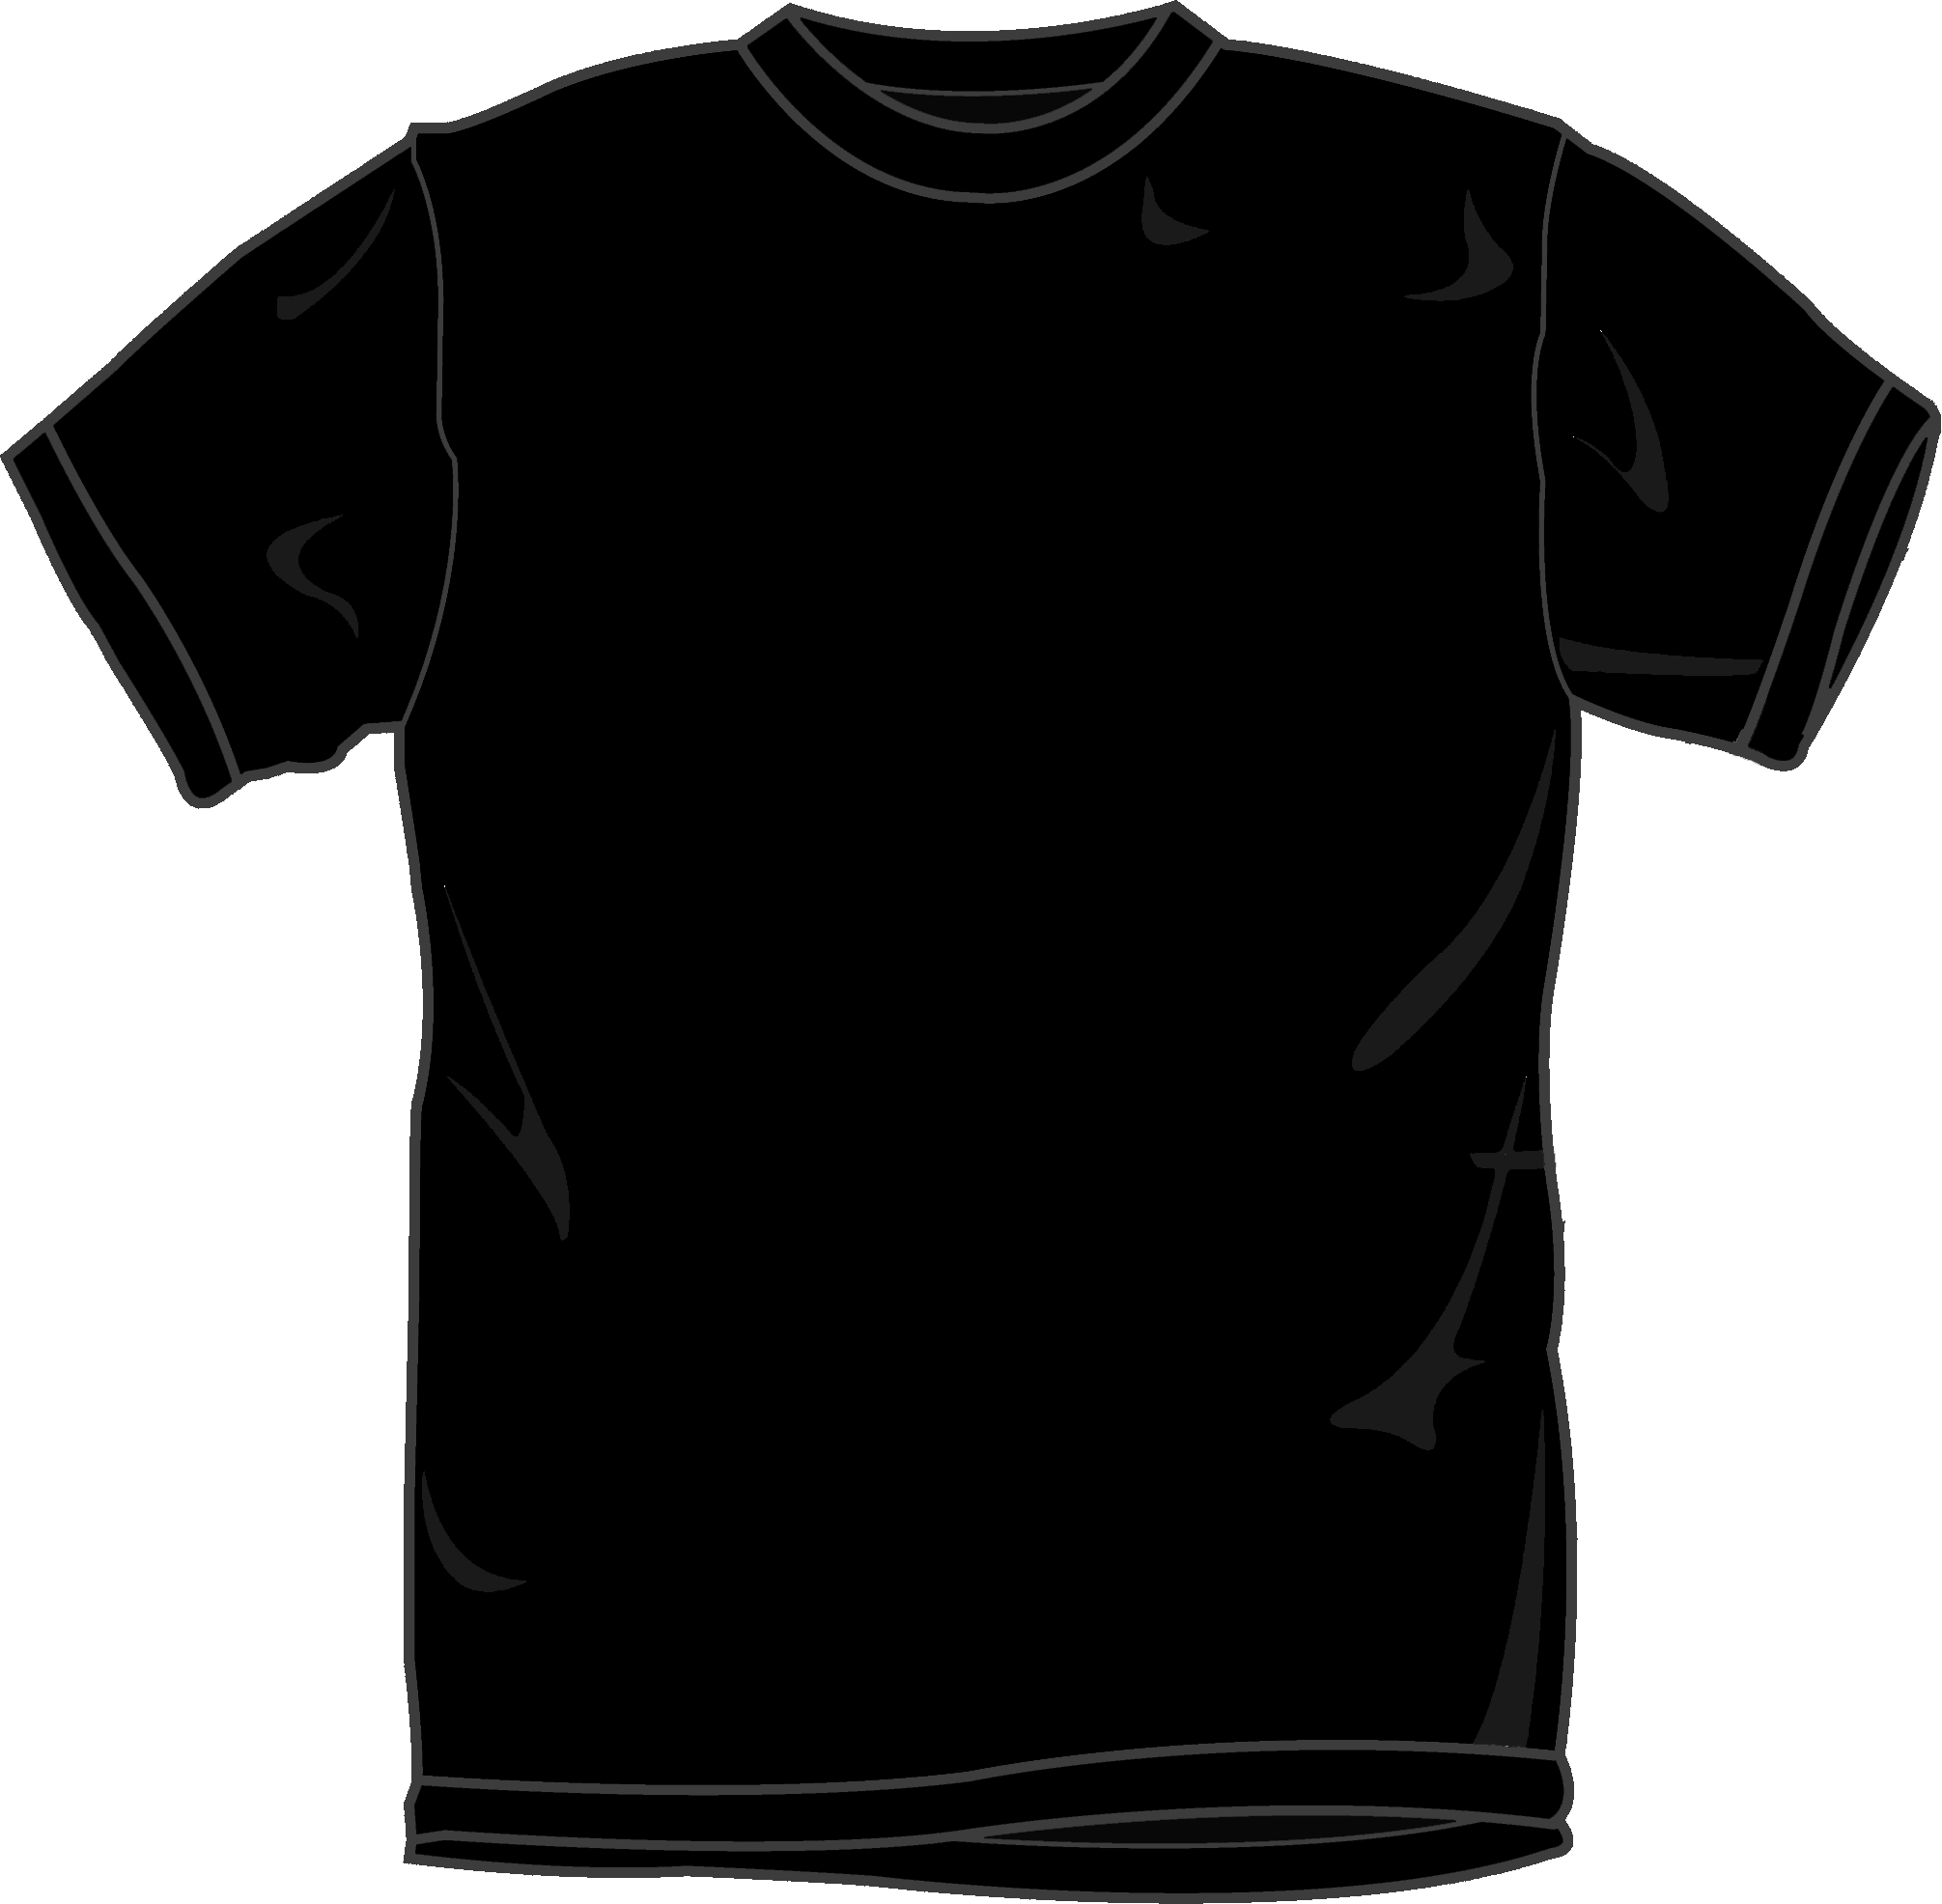 black t shirts template - photo #25